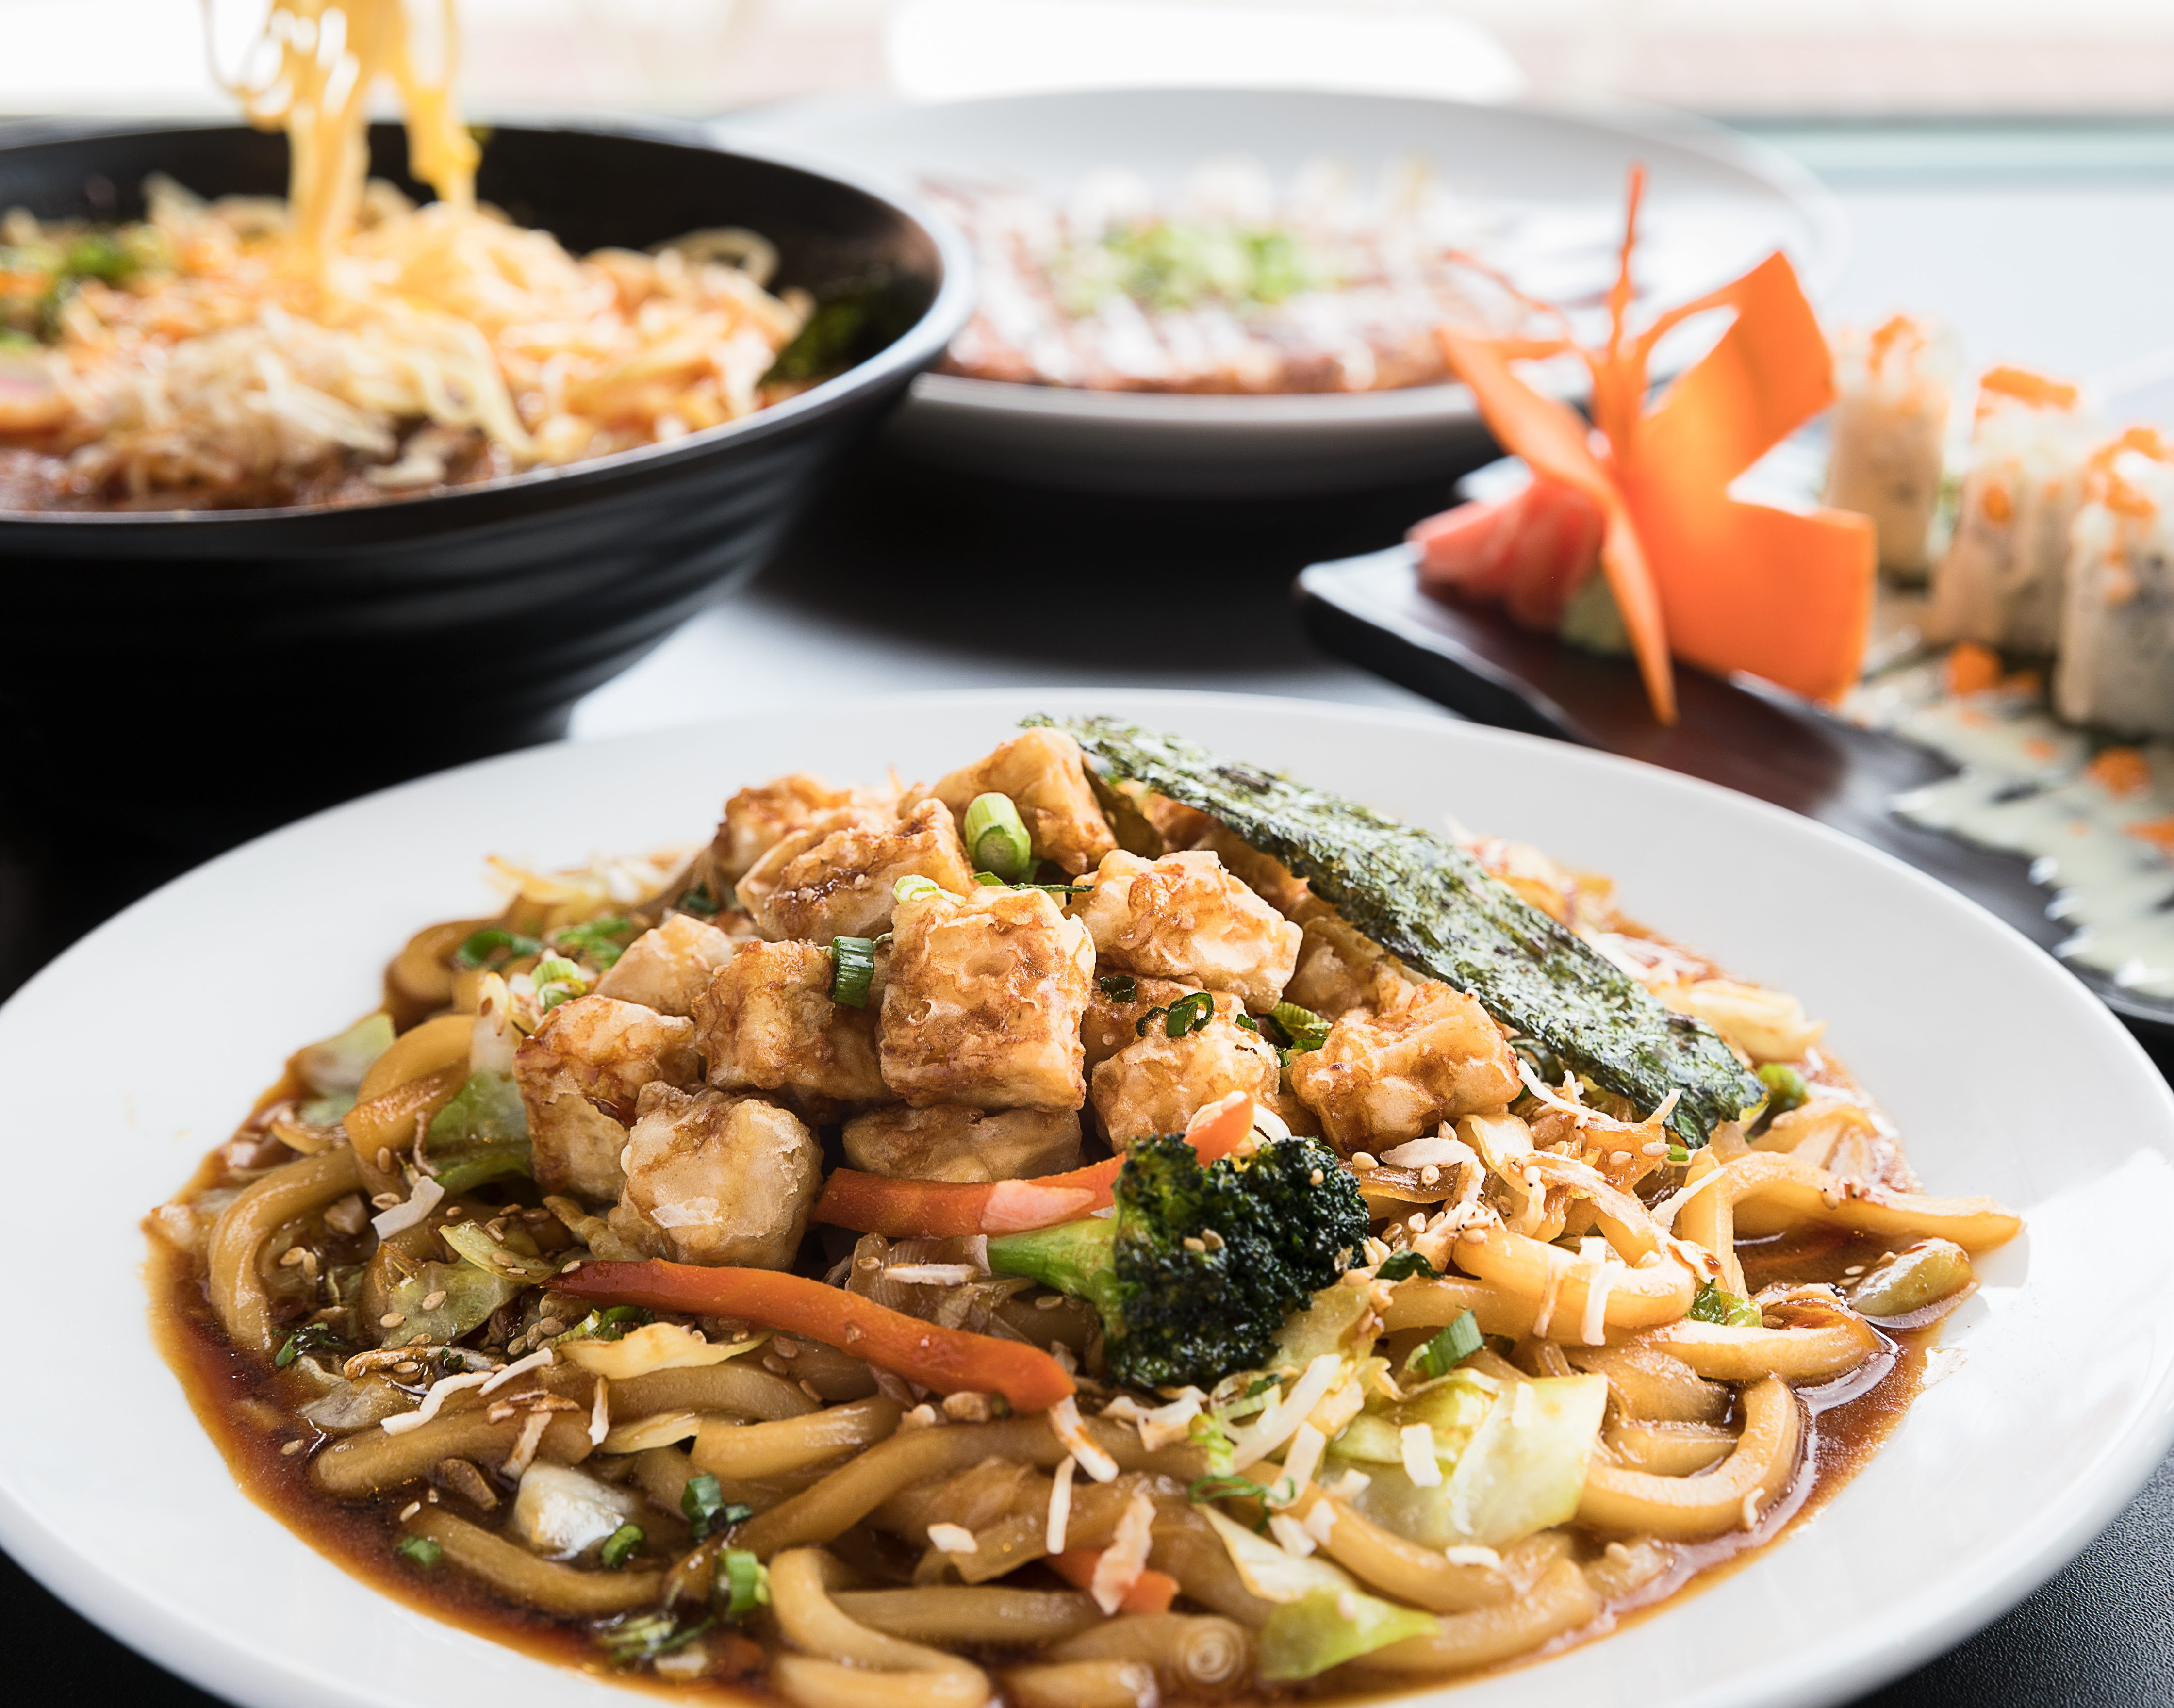 You deserve dinner at omo japanese soul food photos by brandon almsnoodle lovers rejoice omo has ramen bowls and udon stir fries that are customizable with your choice of protein forumfinder Choice Image